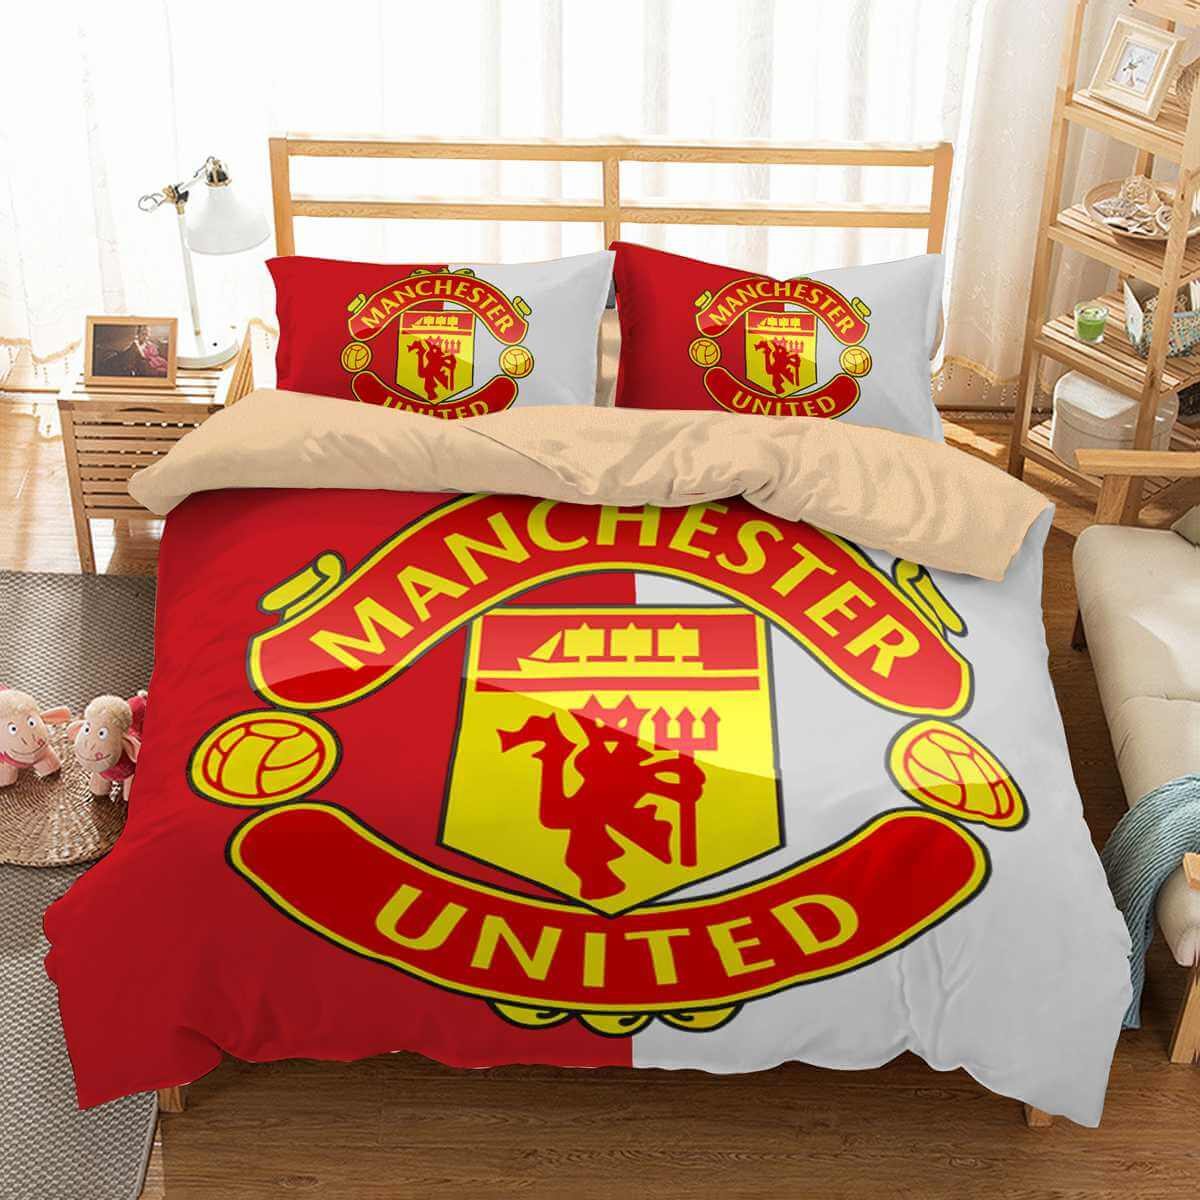 3d Customize Manchester United Bedding Set Duvet Cover Set Bedroom Set Three Lemons Hometextile